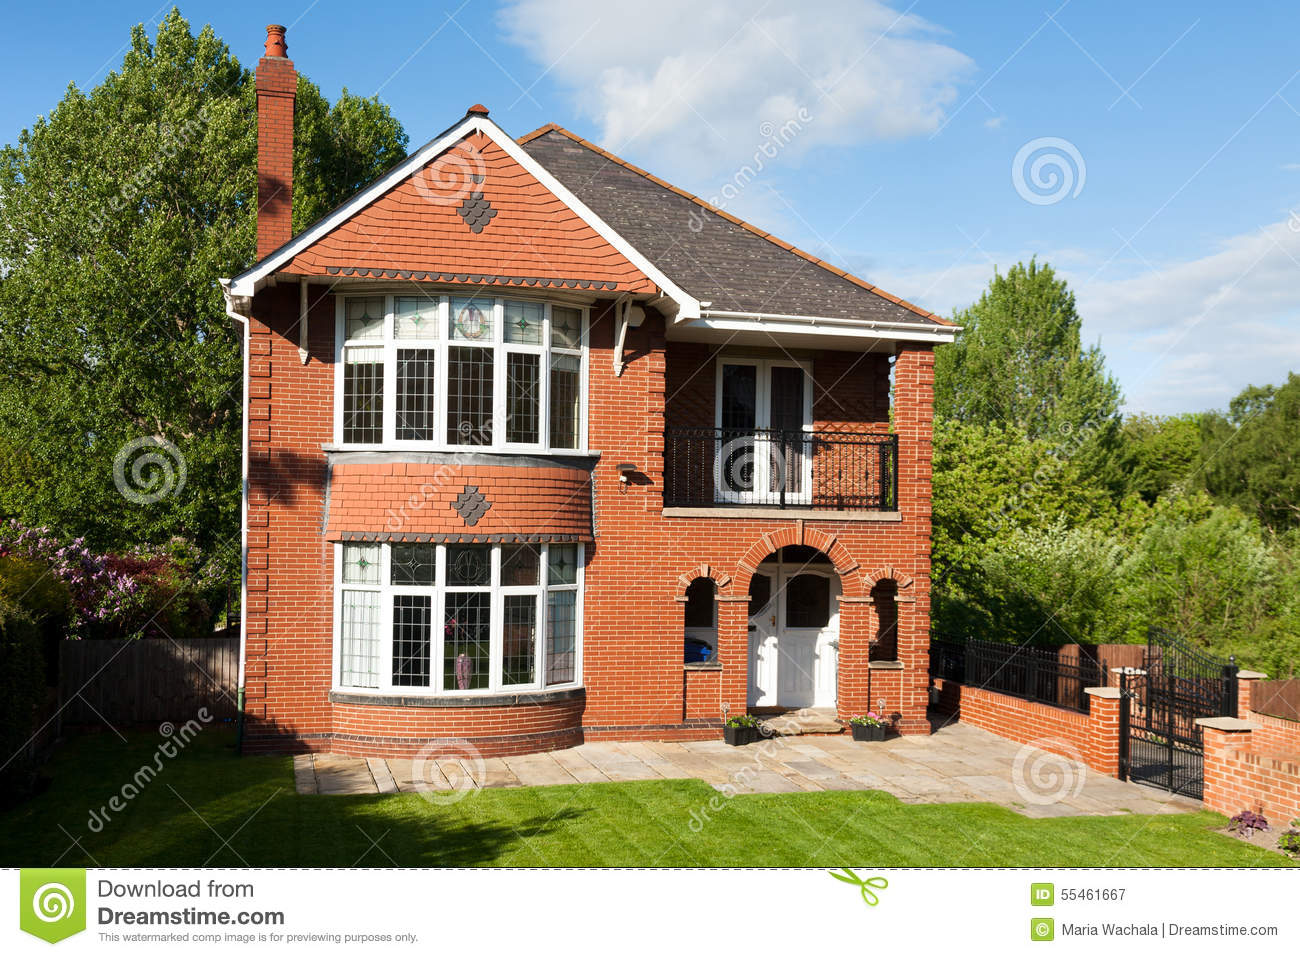 Typical English House Stock Photo - Image: 55461667